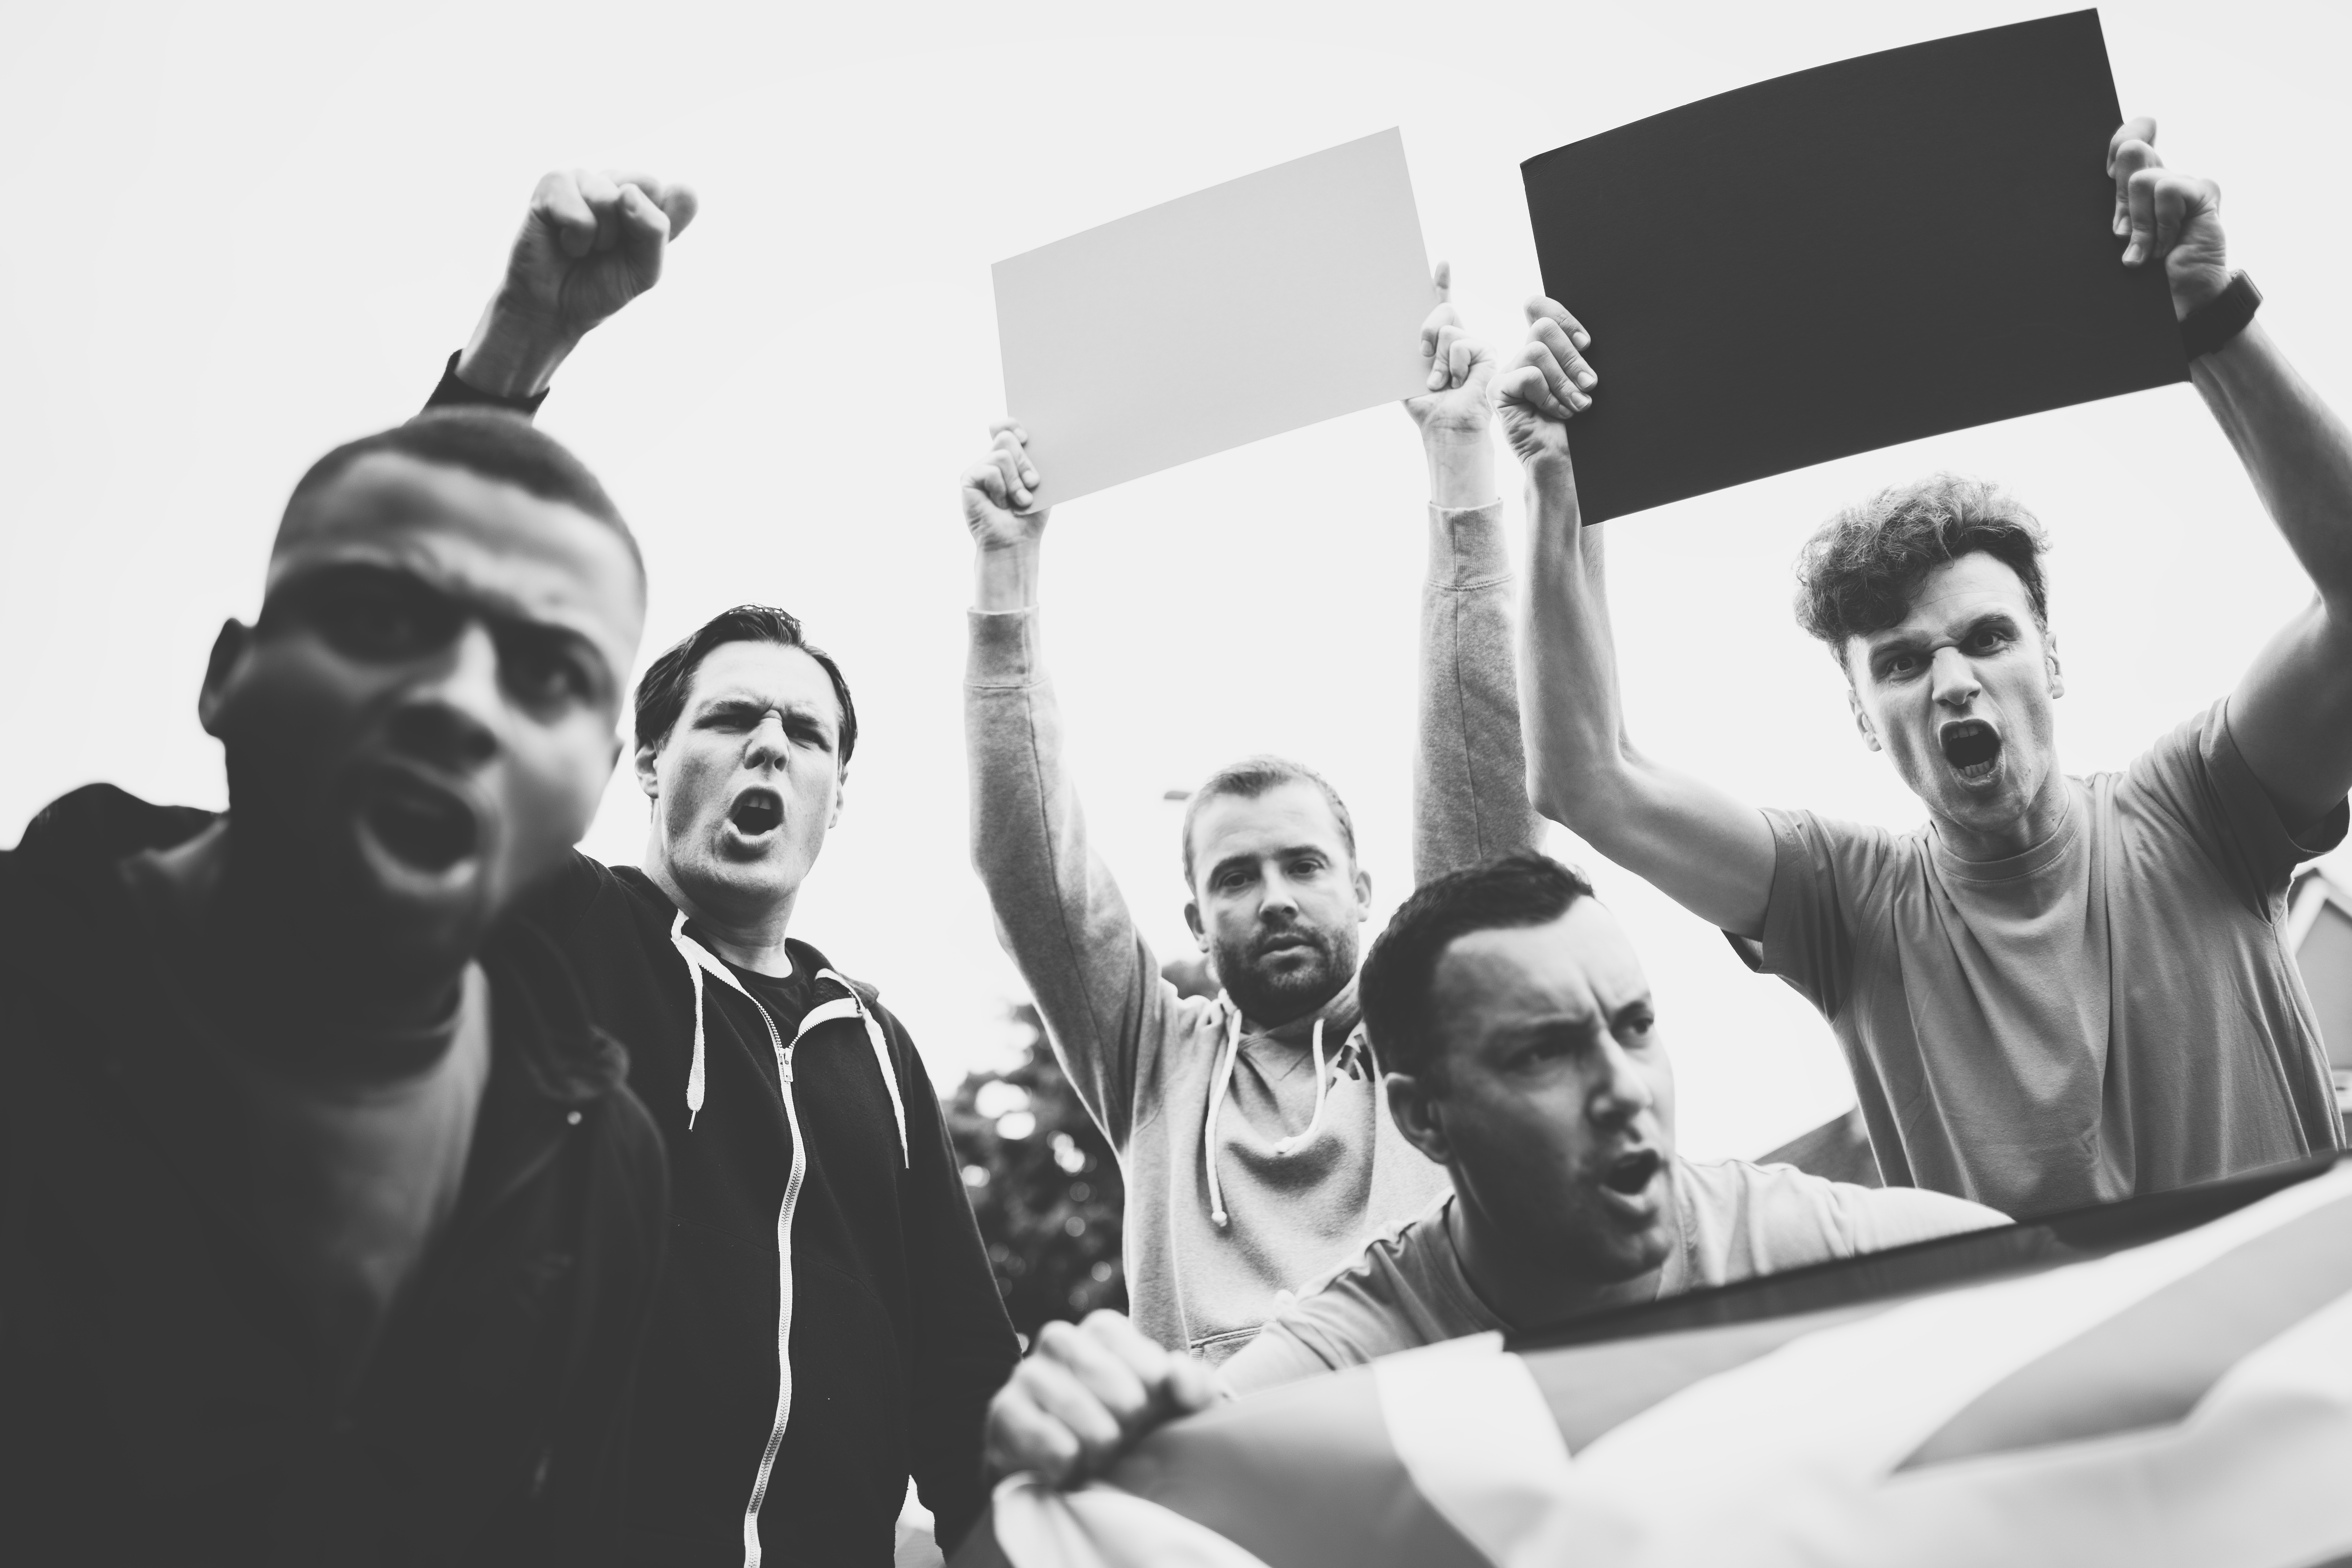 Group of angry men showing a UK flag and blank boards shouting during a protest